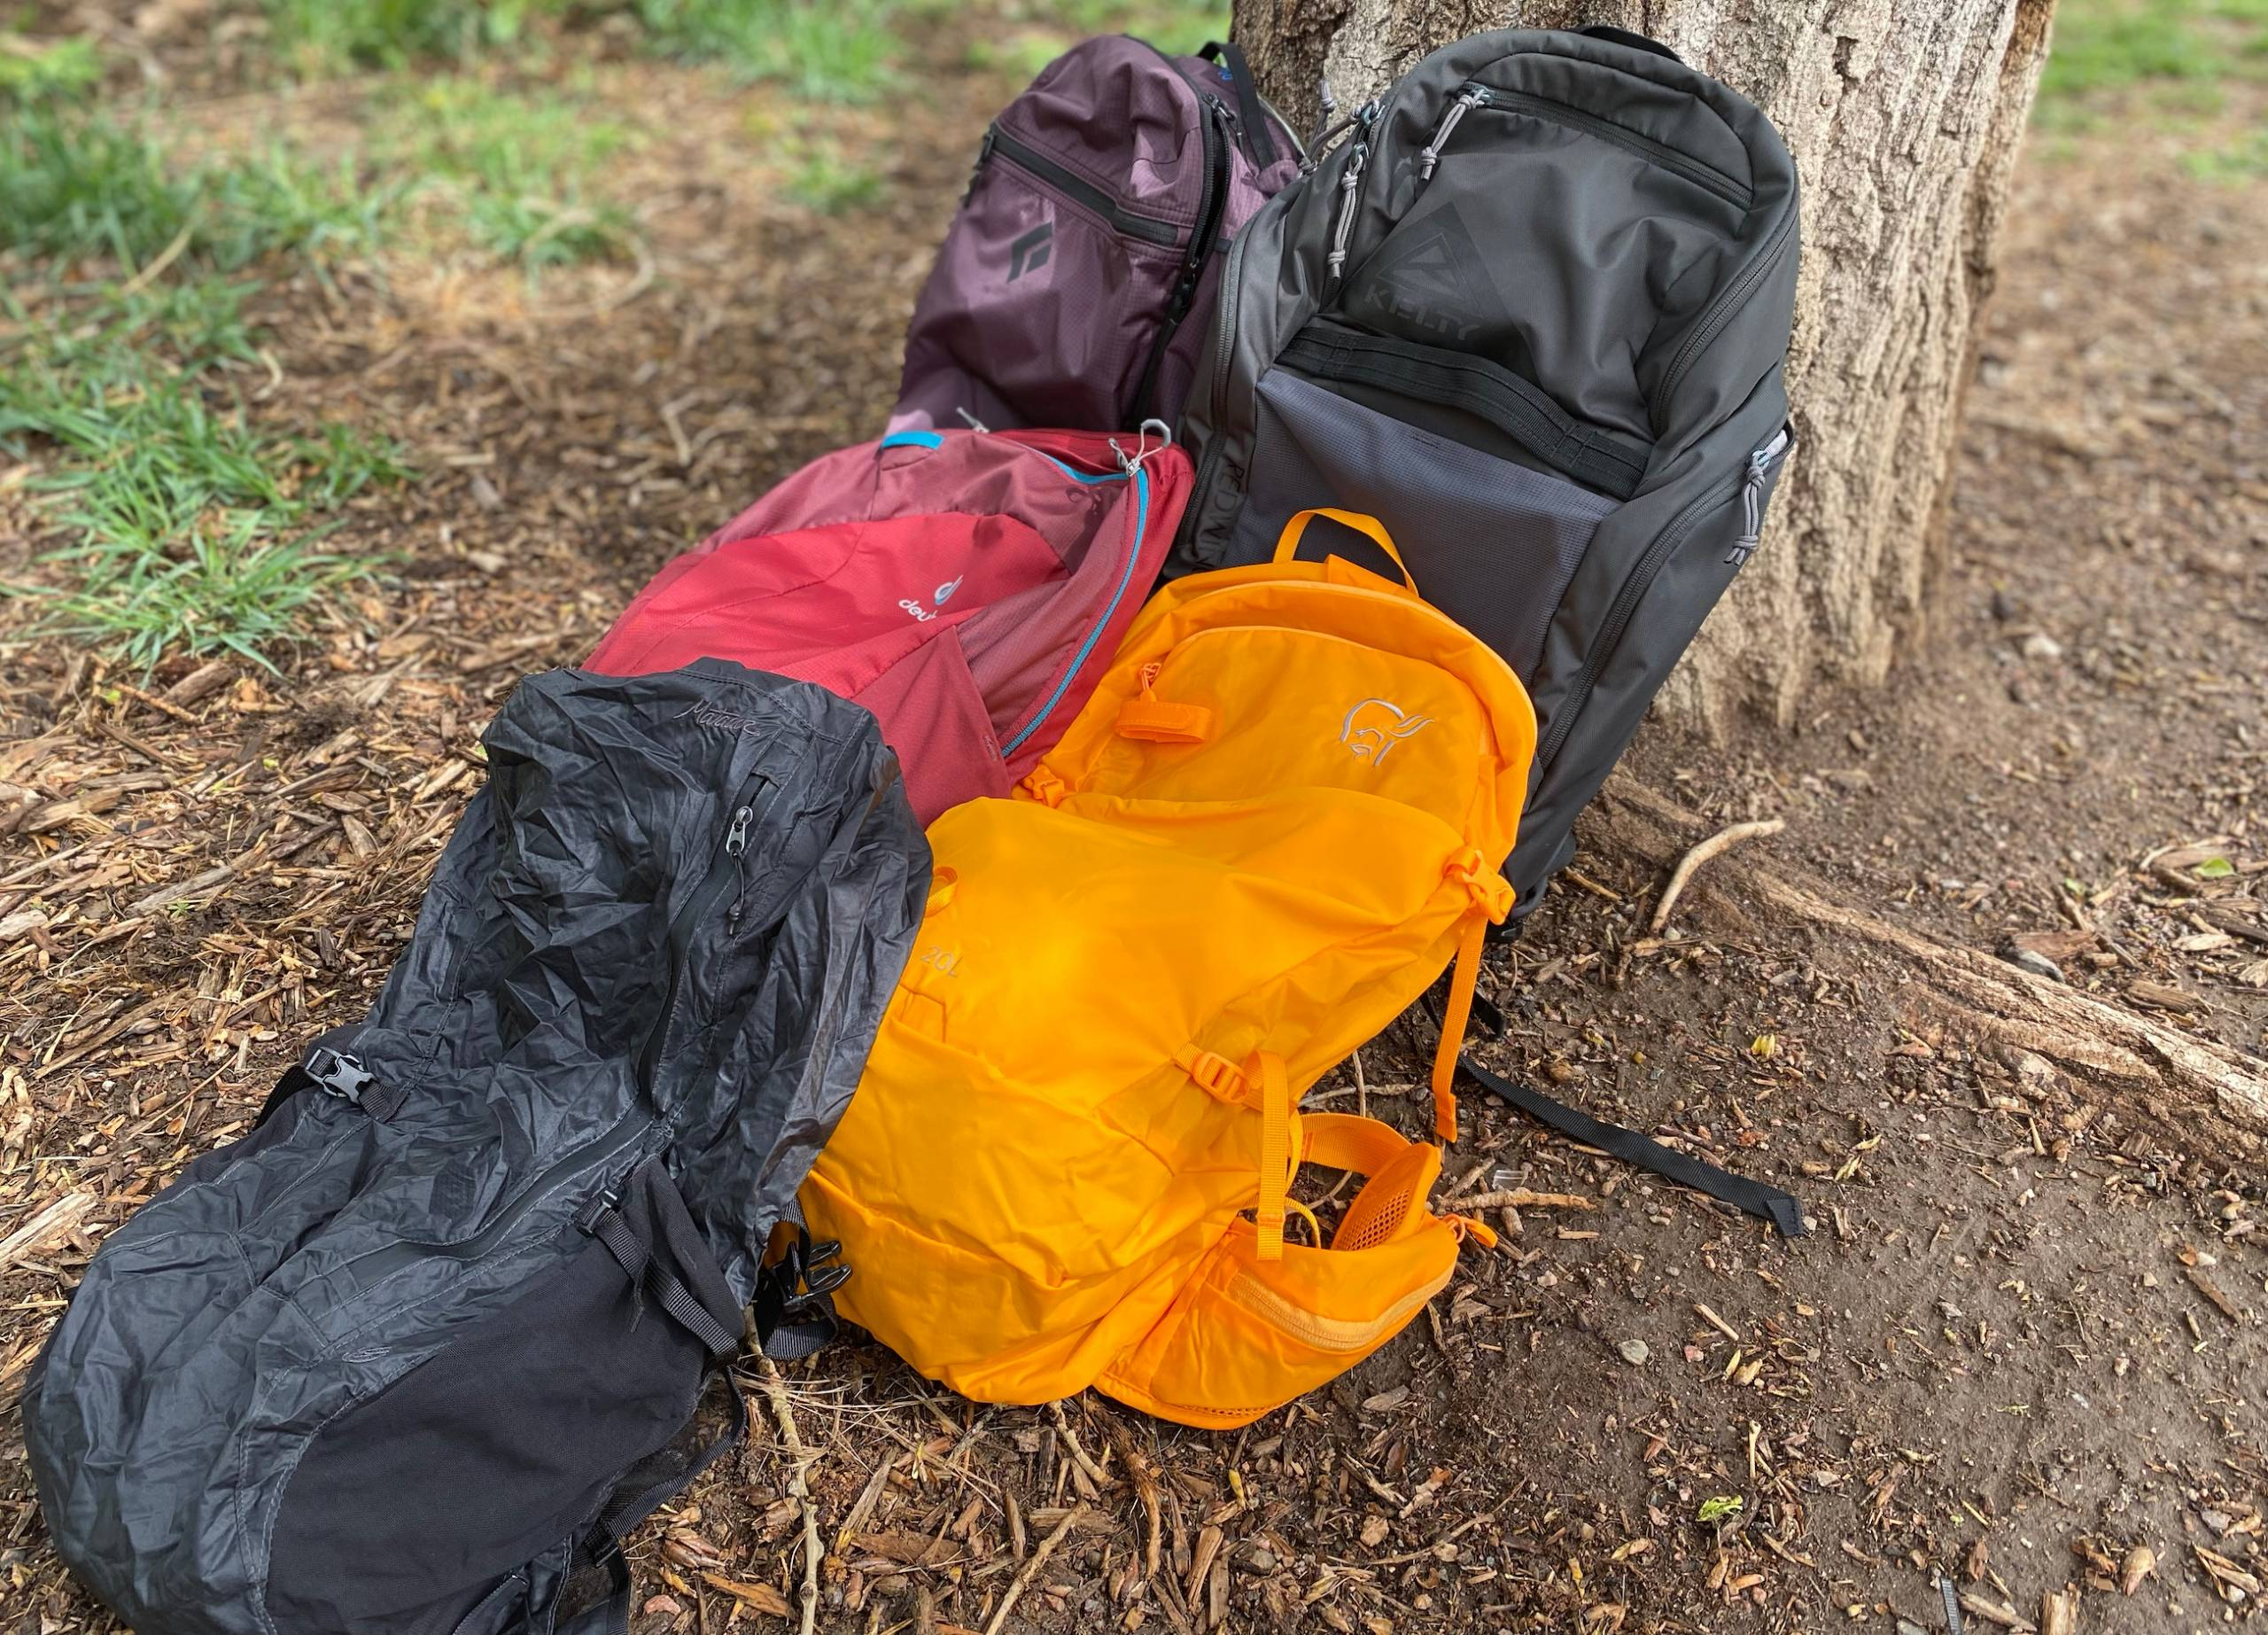 5 different sized and colored daypacks leaning against an oak tree trailside